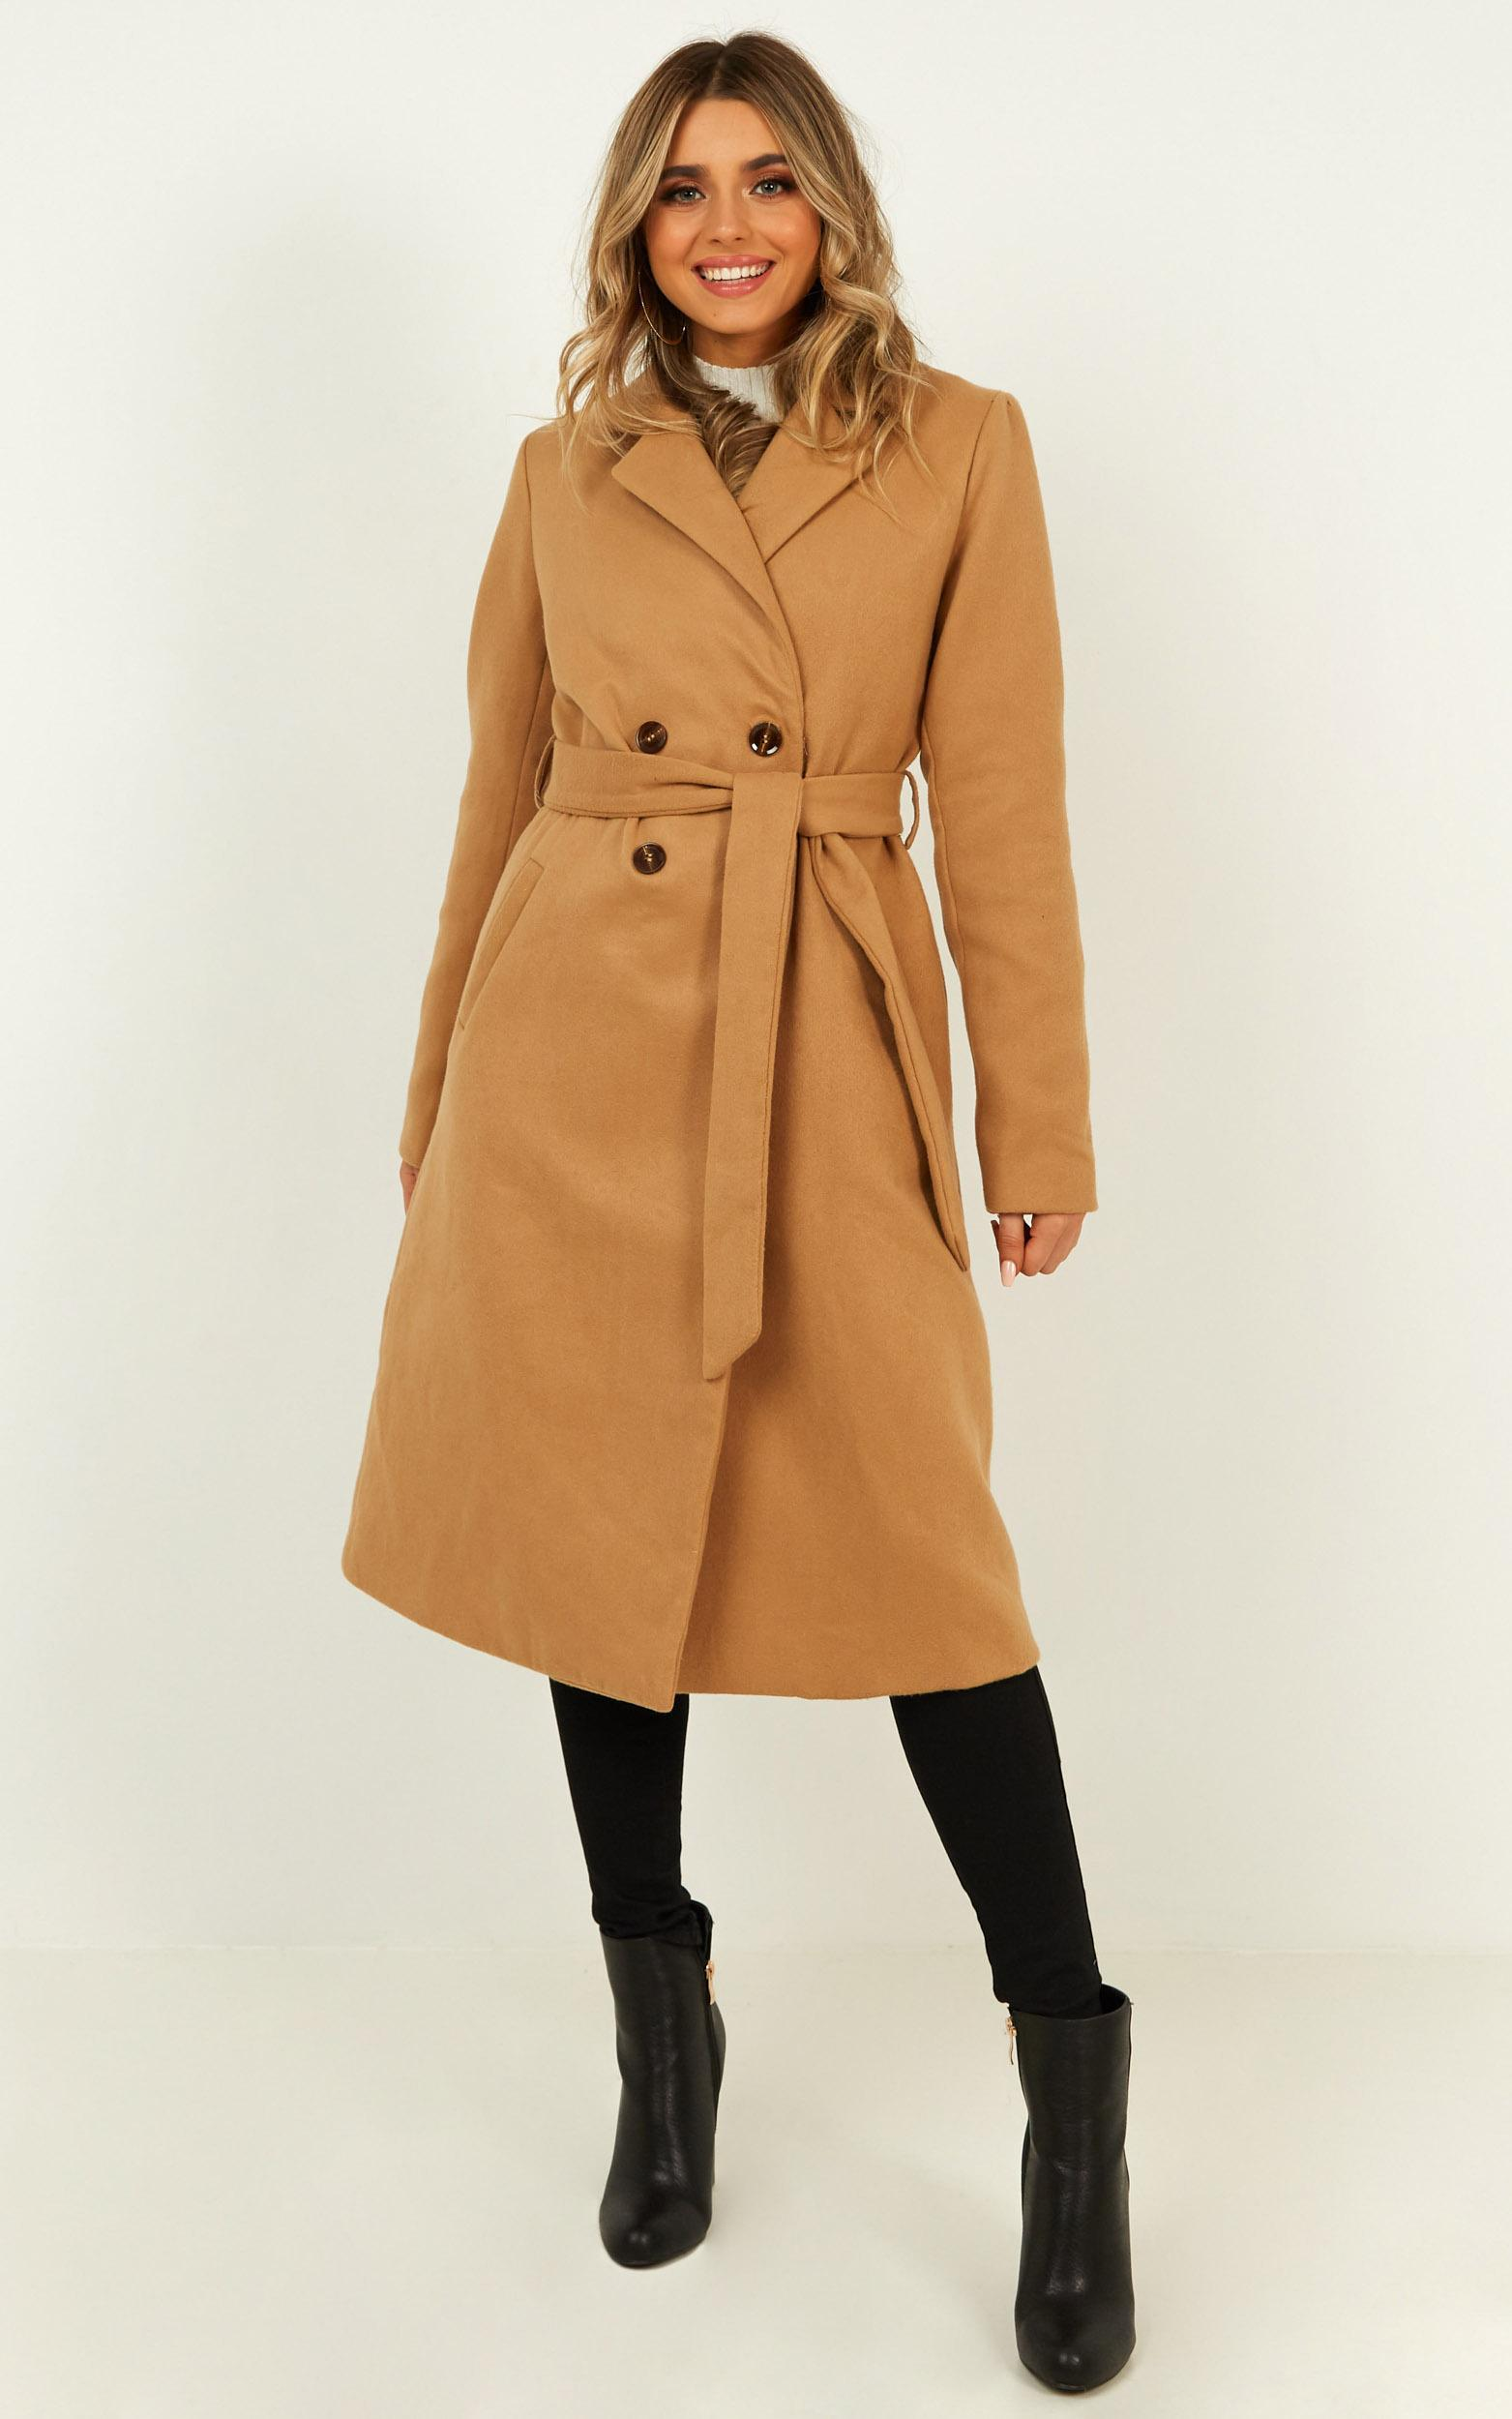 Forever Laughing Coat in camel - 20 (XXXXL), Camel, hi-res image number null